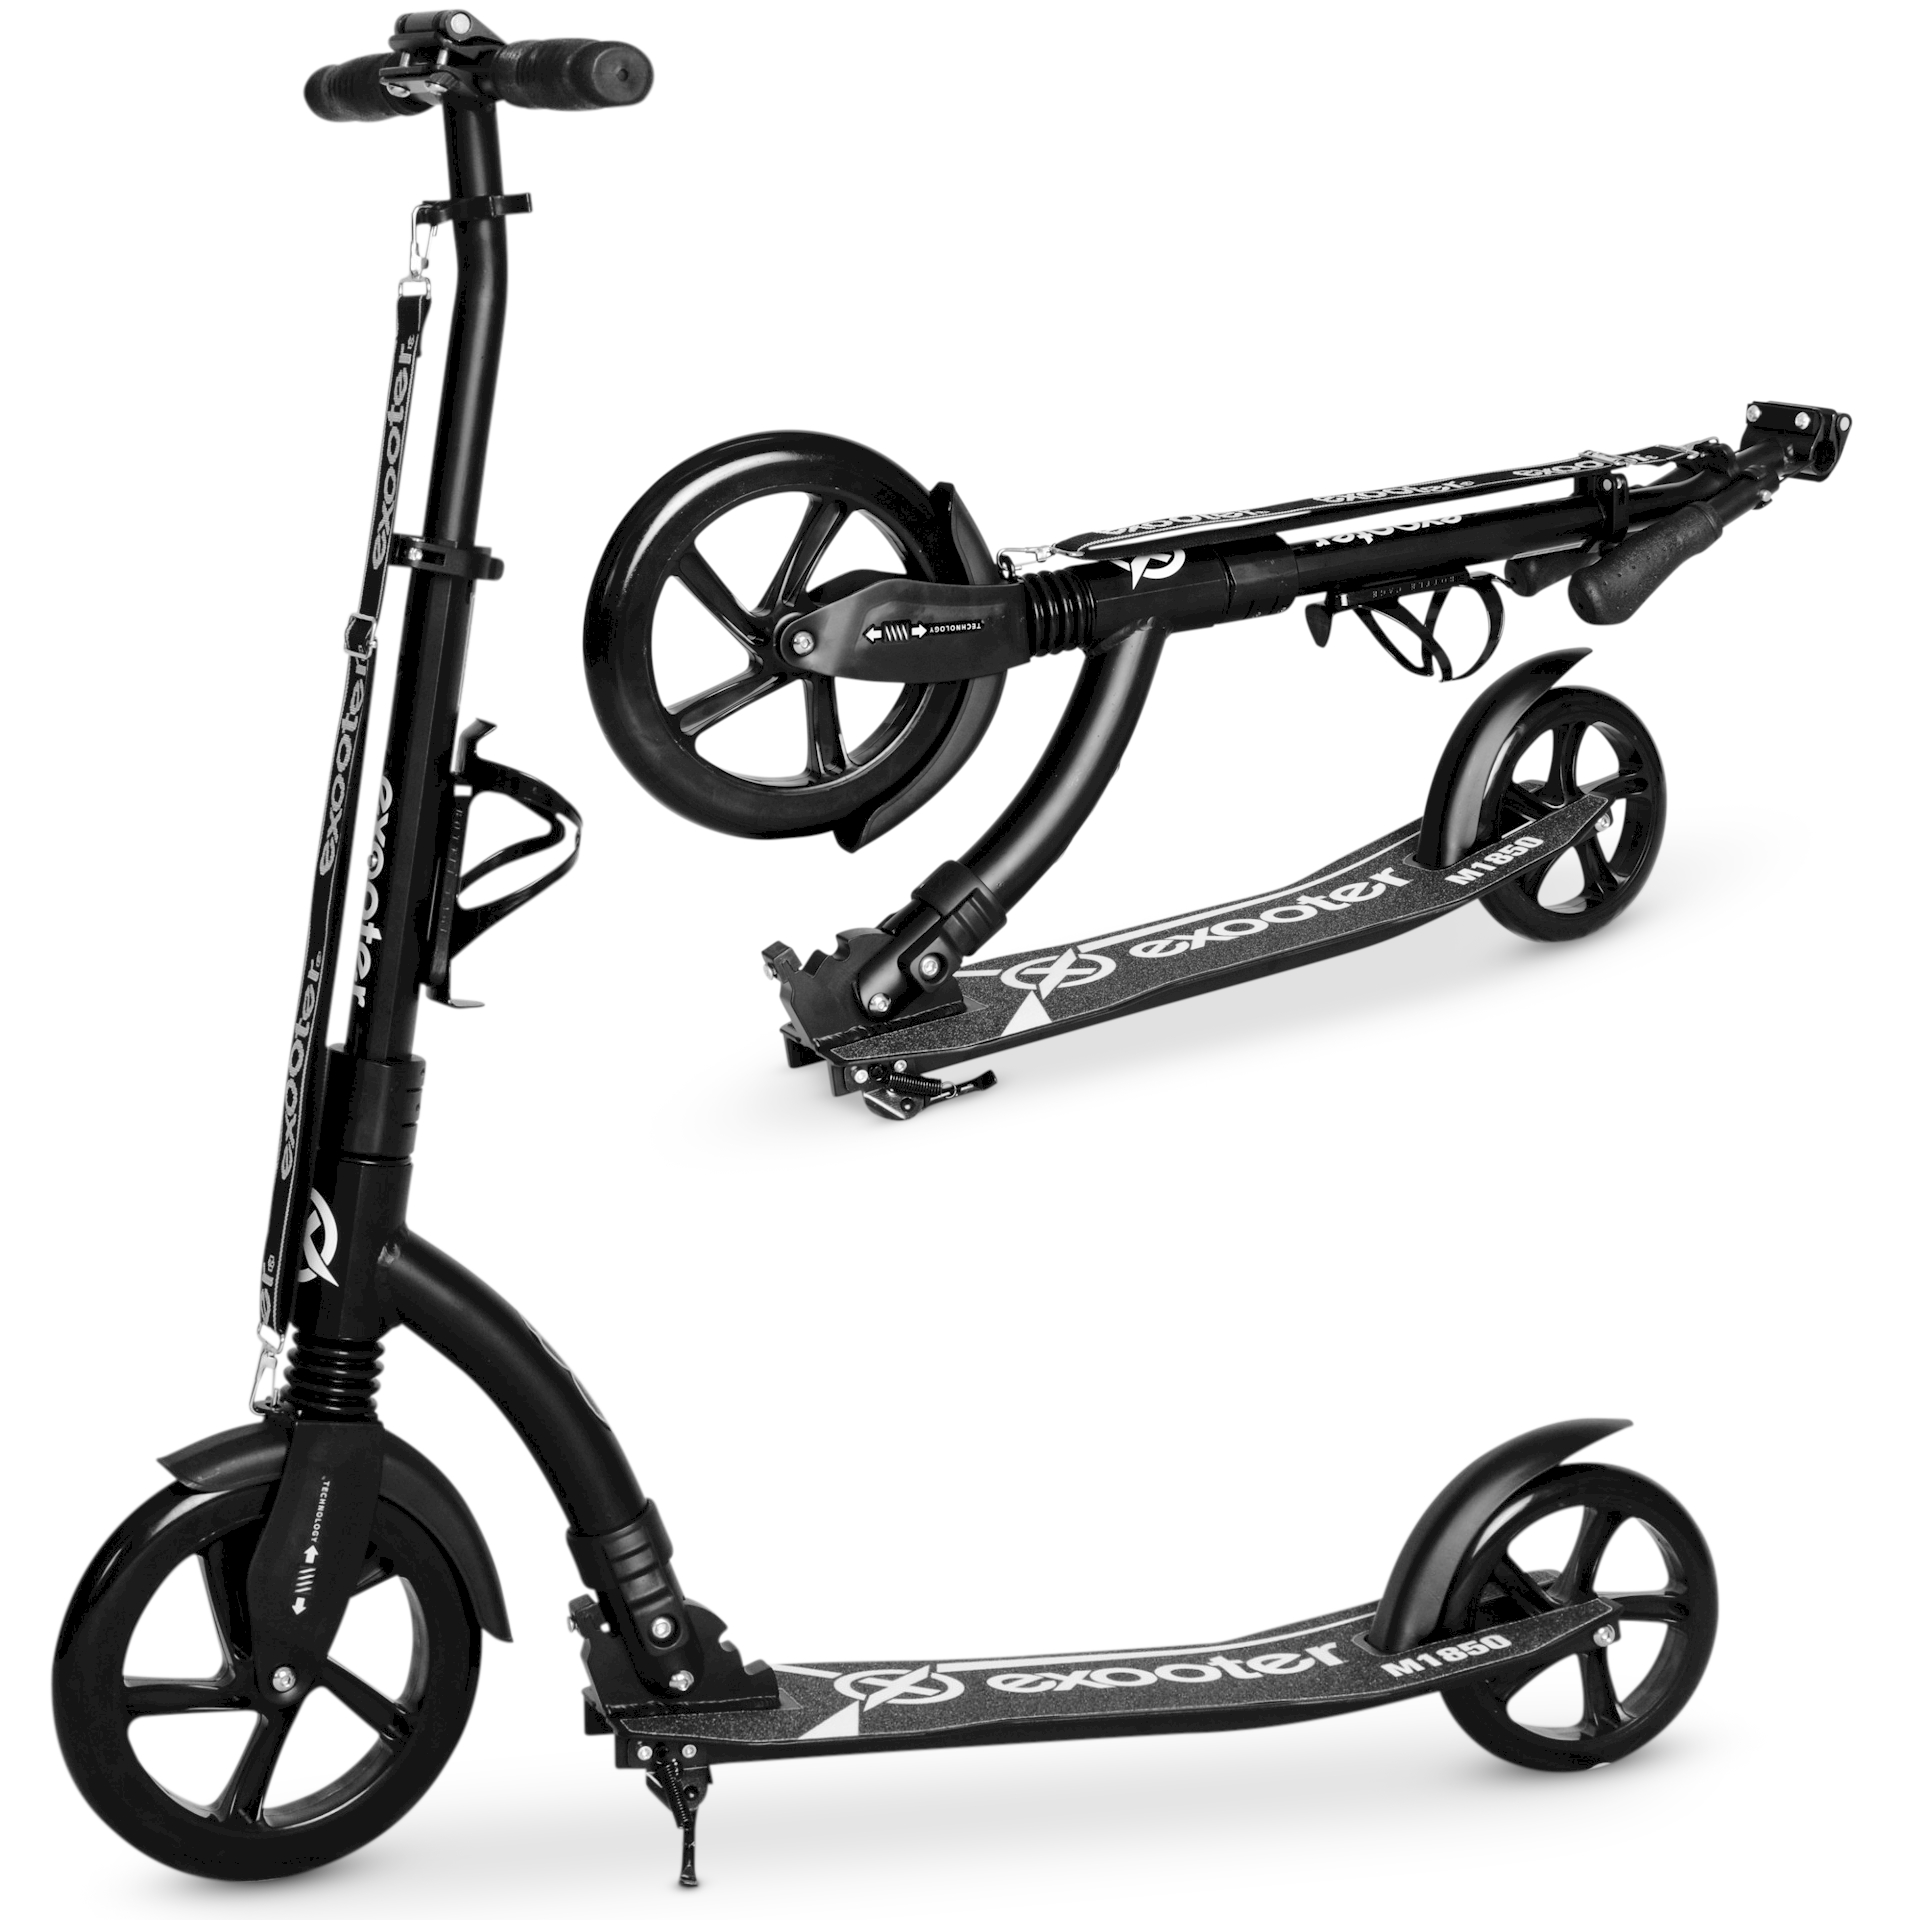 EXOOTER M1850WB 6XL Adult Kick Scooter With Front Shocks And 240mm 180mm Black Wheels In... by EXOOTER